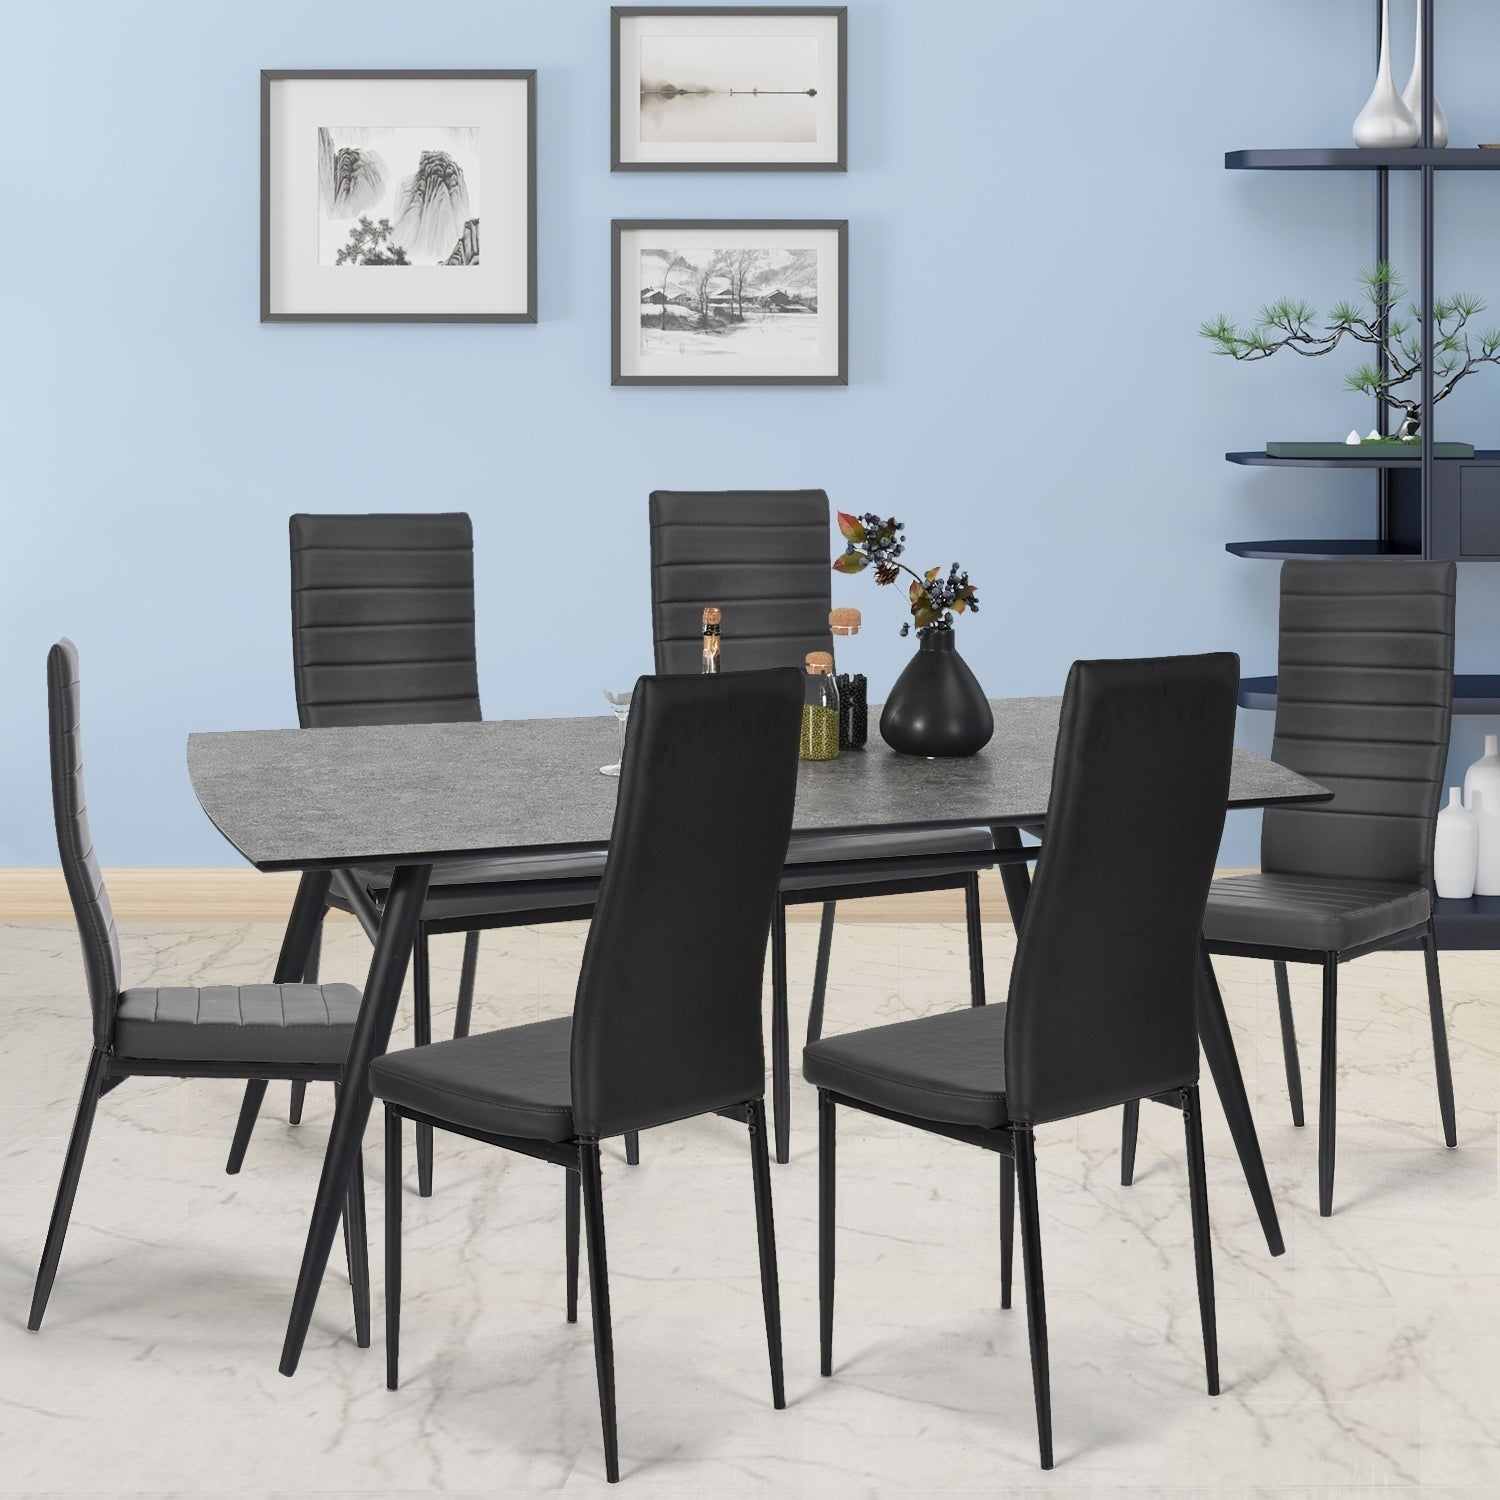 Picture of: Carson Carrington Saivis 7 Piece Modern Kitchen Dining Table Set On Sale Overstock 29574918